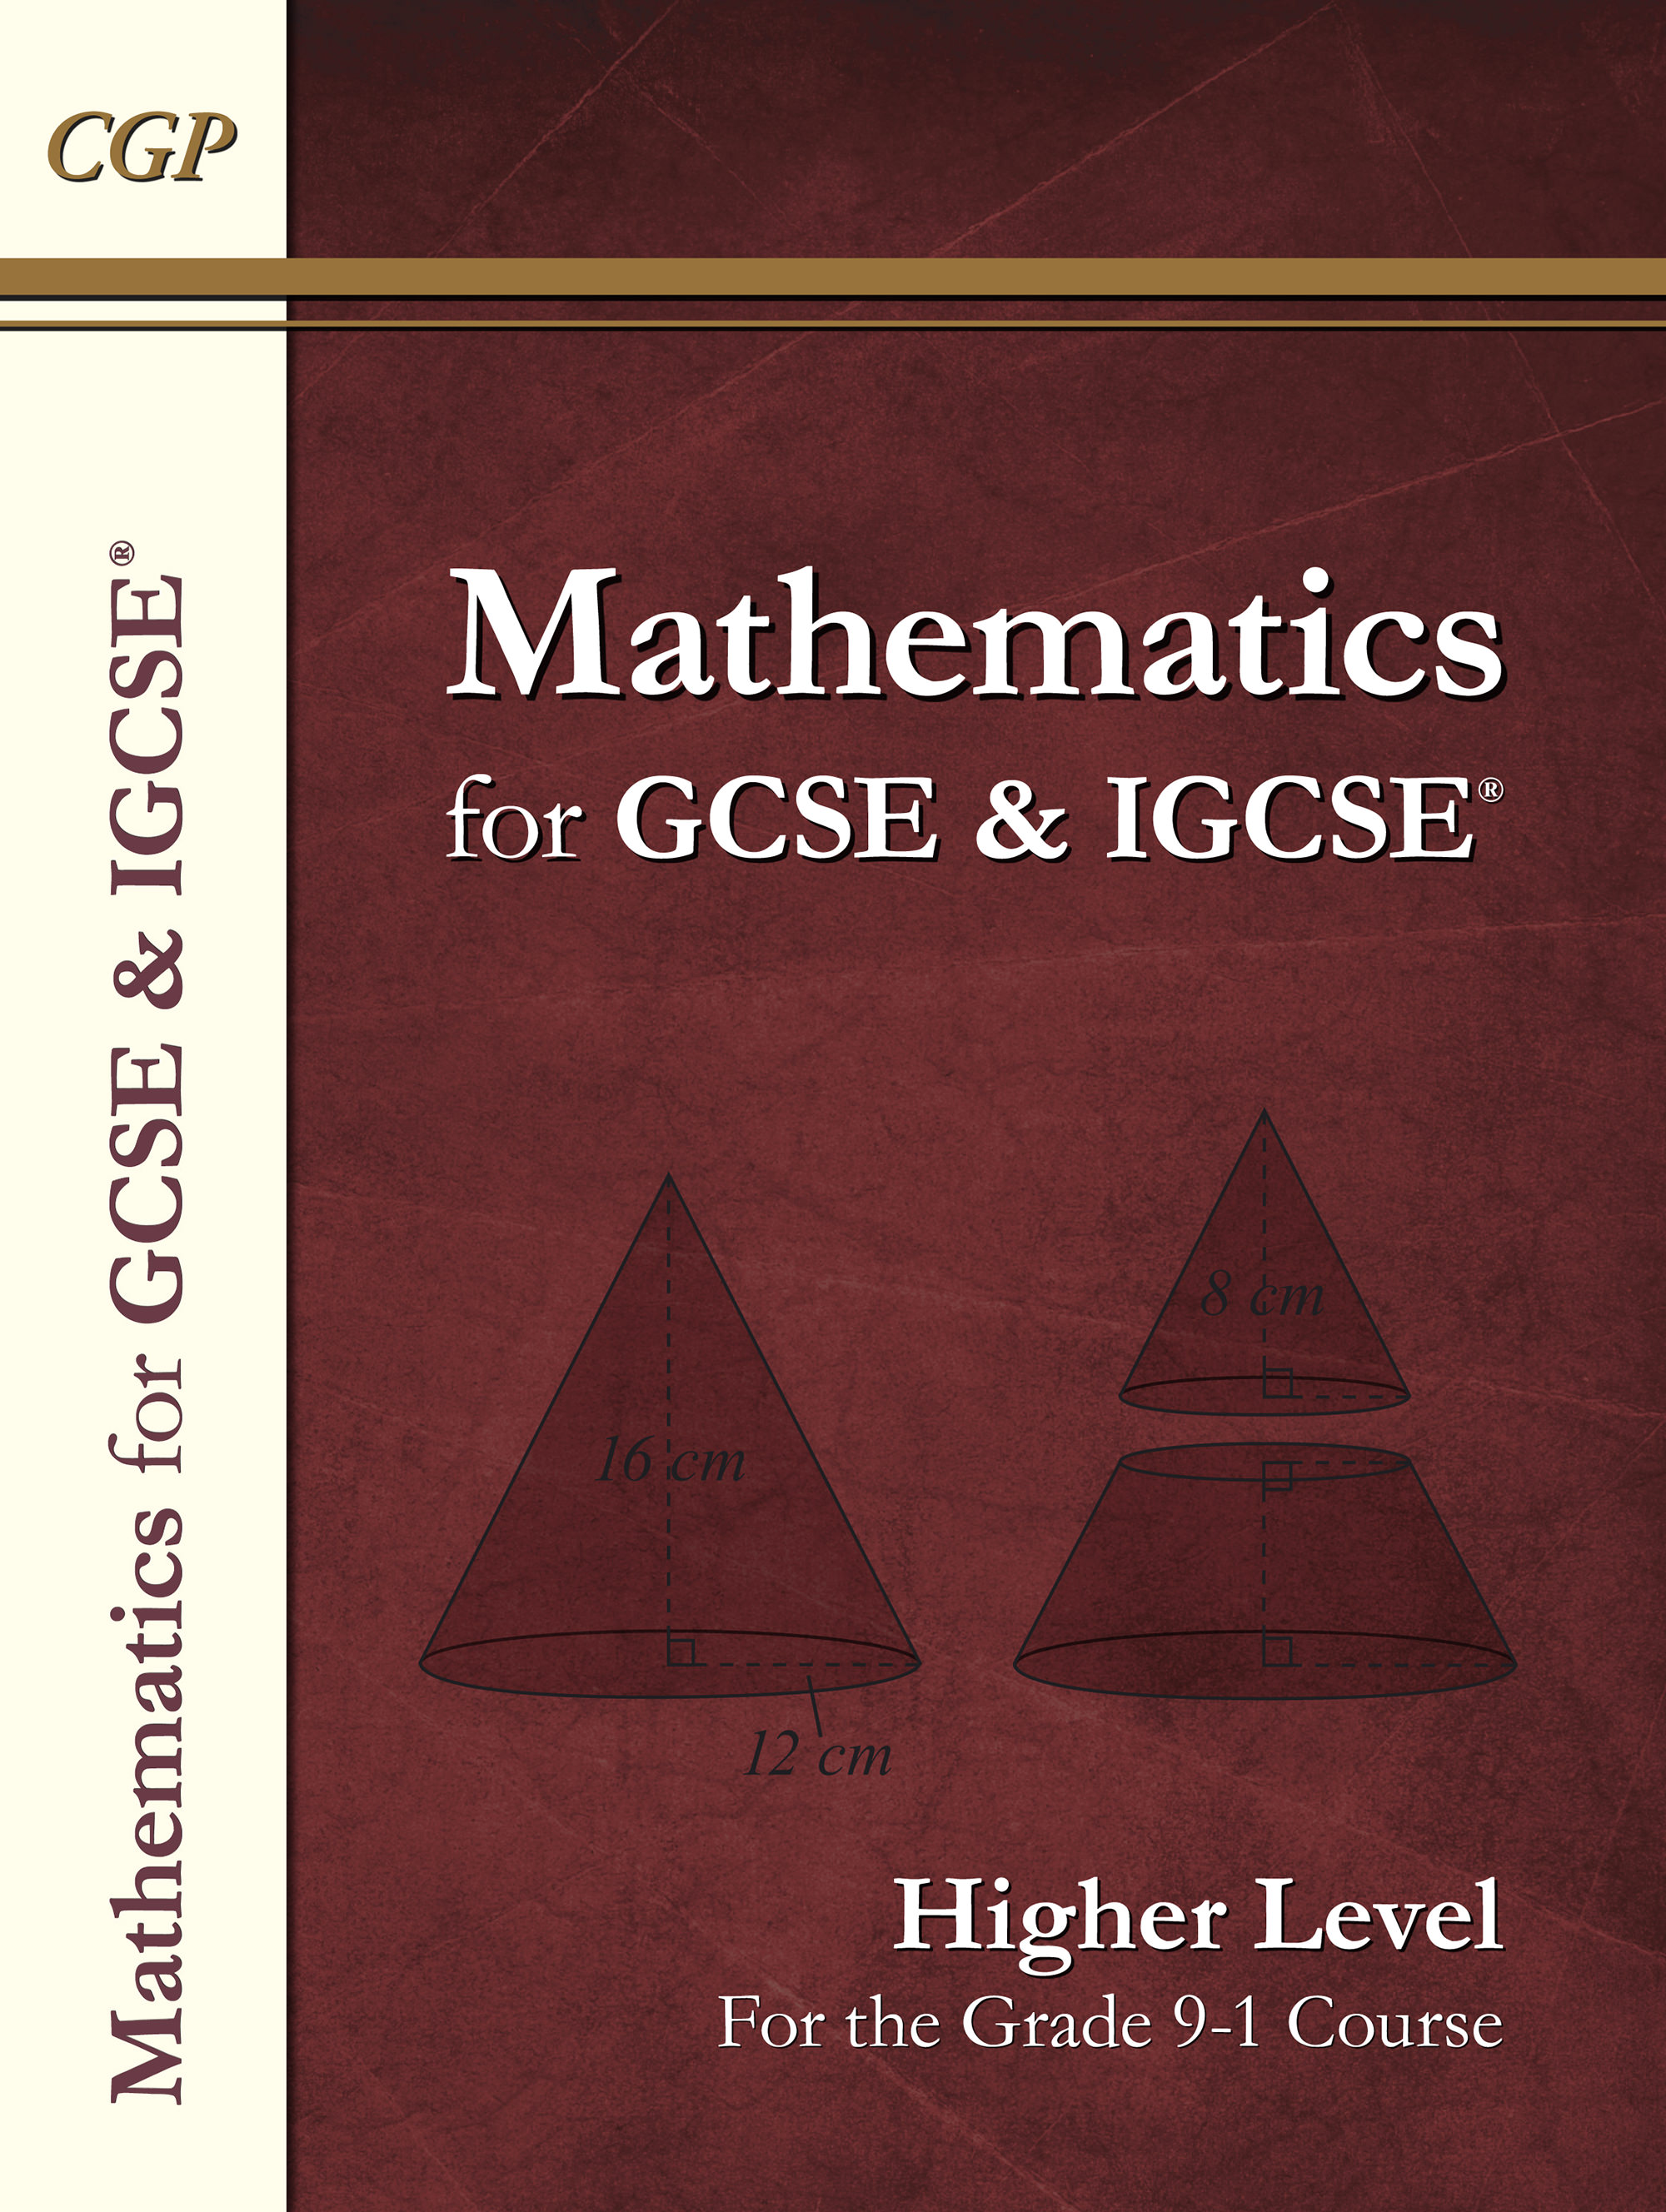 MHN43 - Maths for GCSE and IGCSE® Textbook, Higher (for the Grade 9-1 Course)